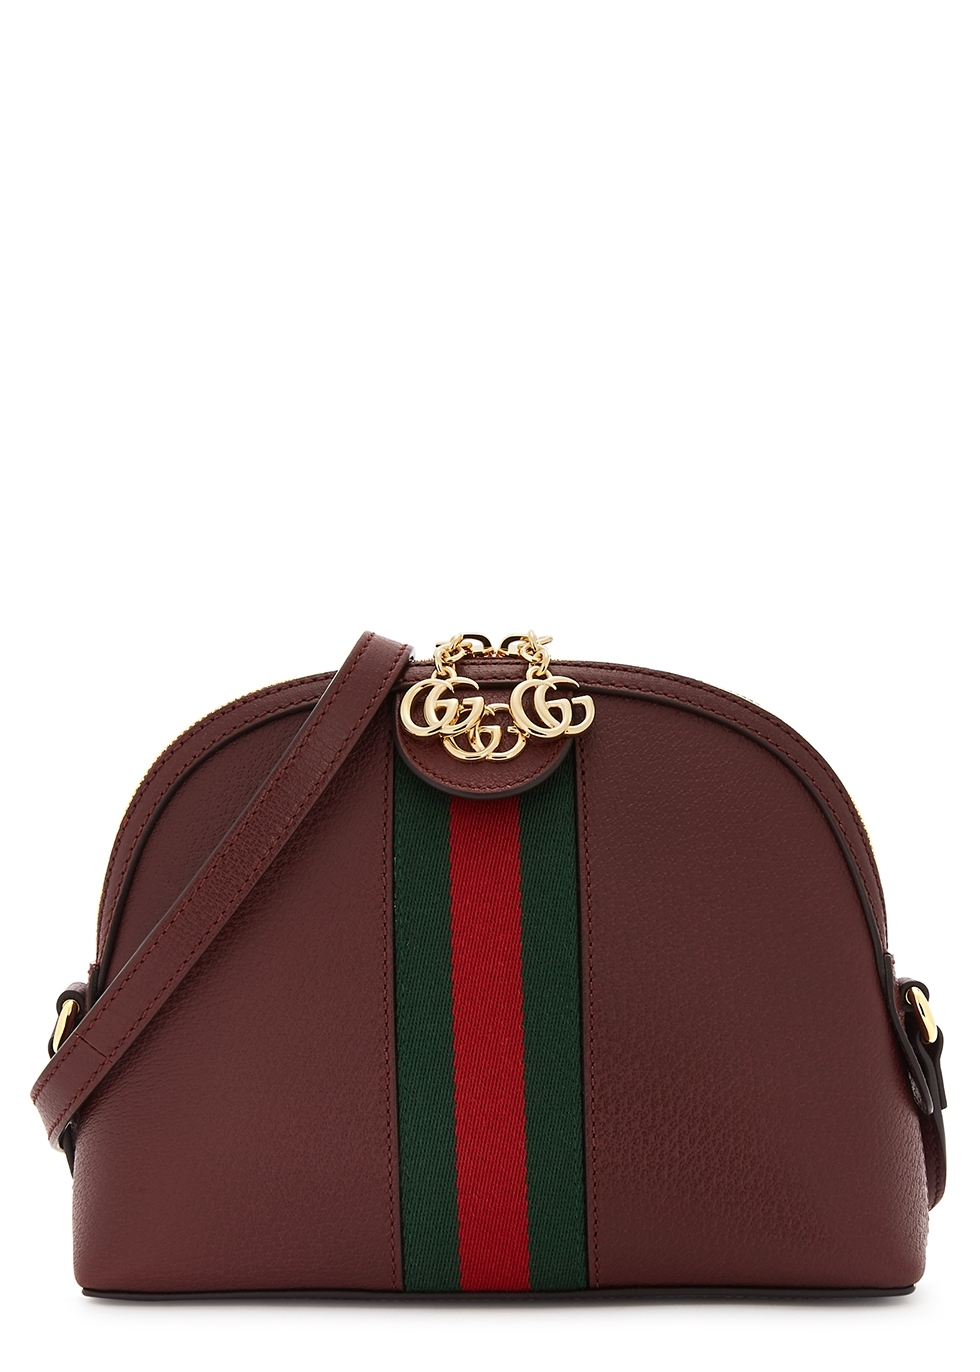 418e2be2a457 Gucci Handbags - Harvey Nichols